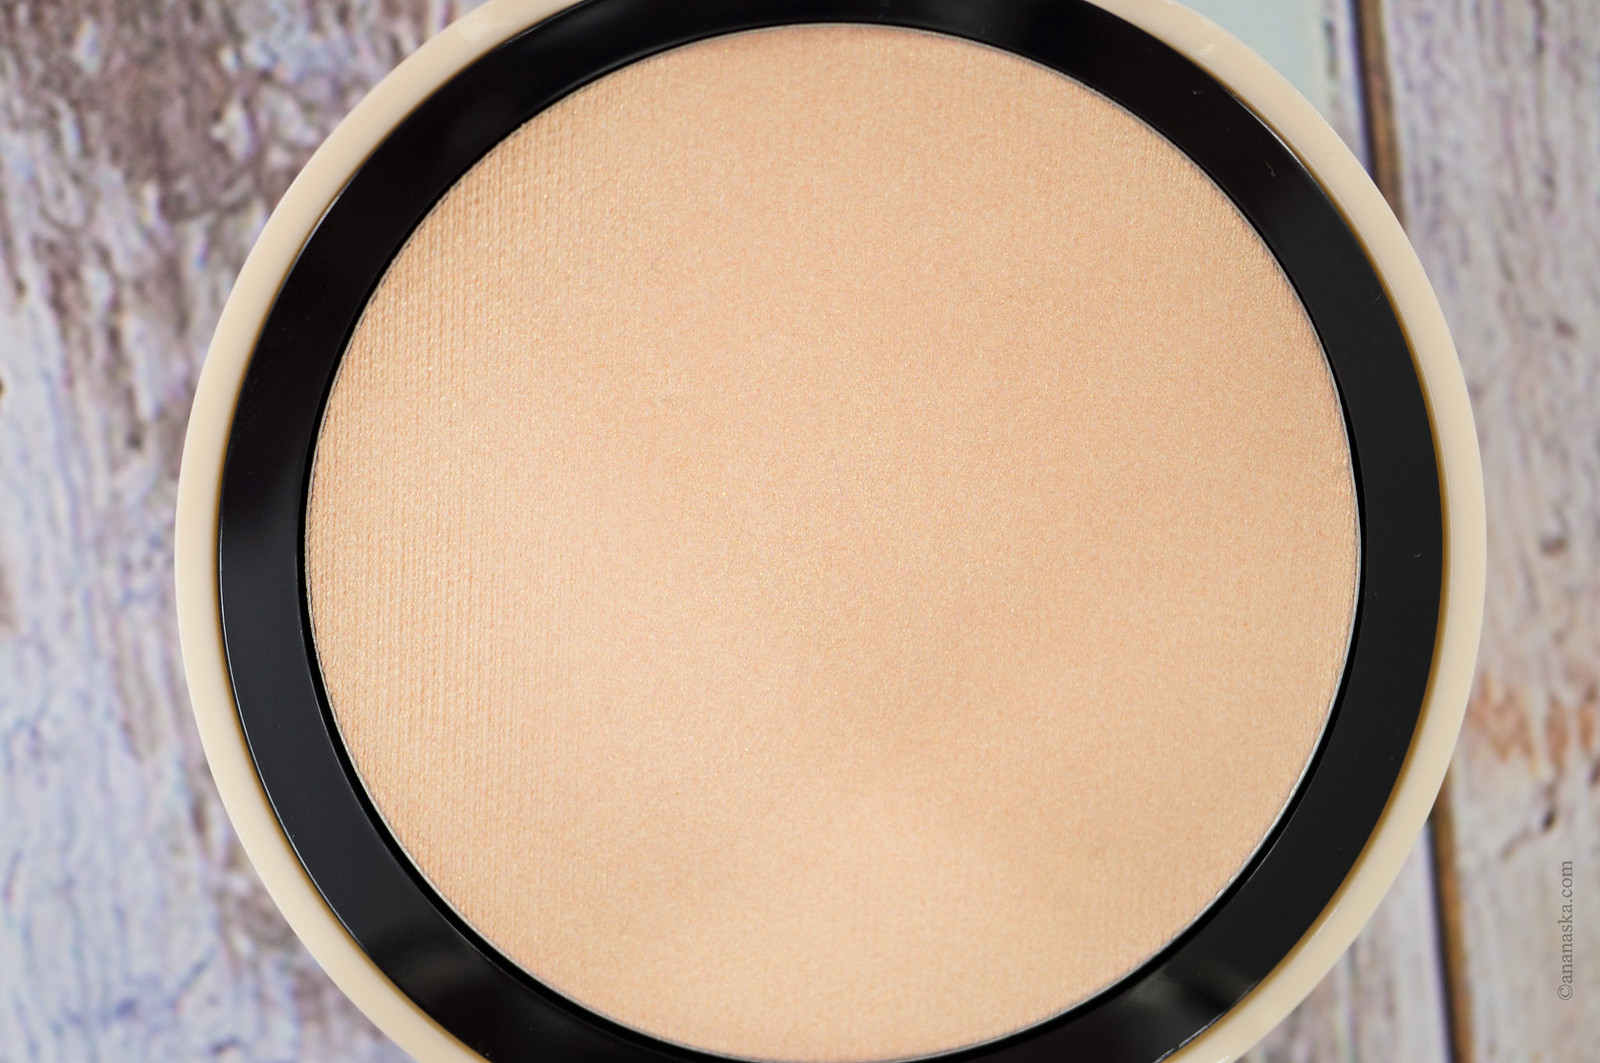 Pink Muse Cream Highlighter 001